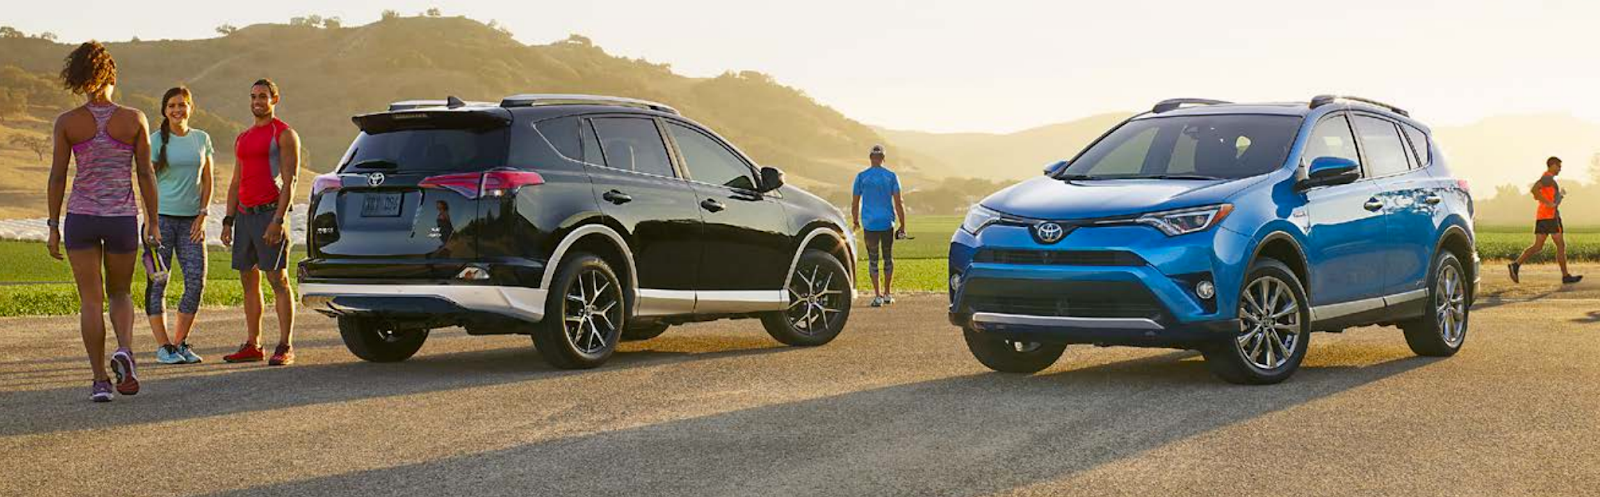 Toyota in Burnaby - 2016 Rav4 Blue and Black - Greater Vancouver Toyota Dealer